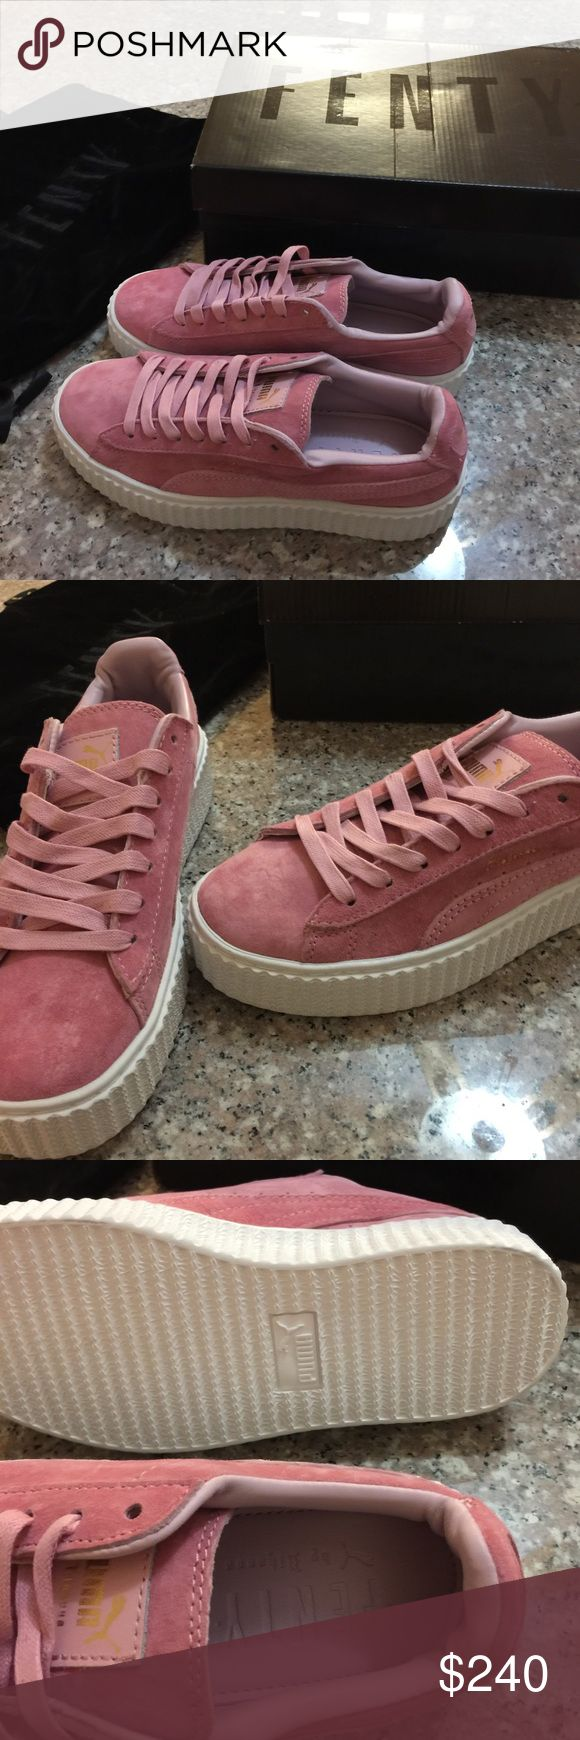 NEW Fenty pink suede creepers New. Comes with dust bag and box like the pictures. Size 7.5, 24cm. Available on 〽️ercari for $210 or 🅿️🅿️ Puma Shoes Platforms